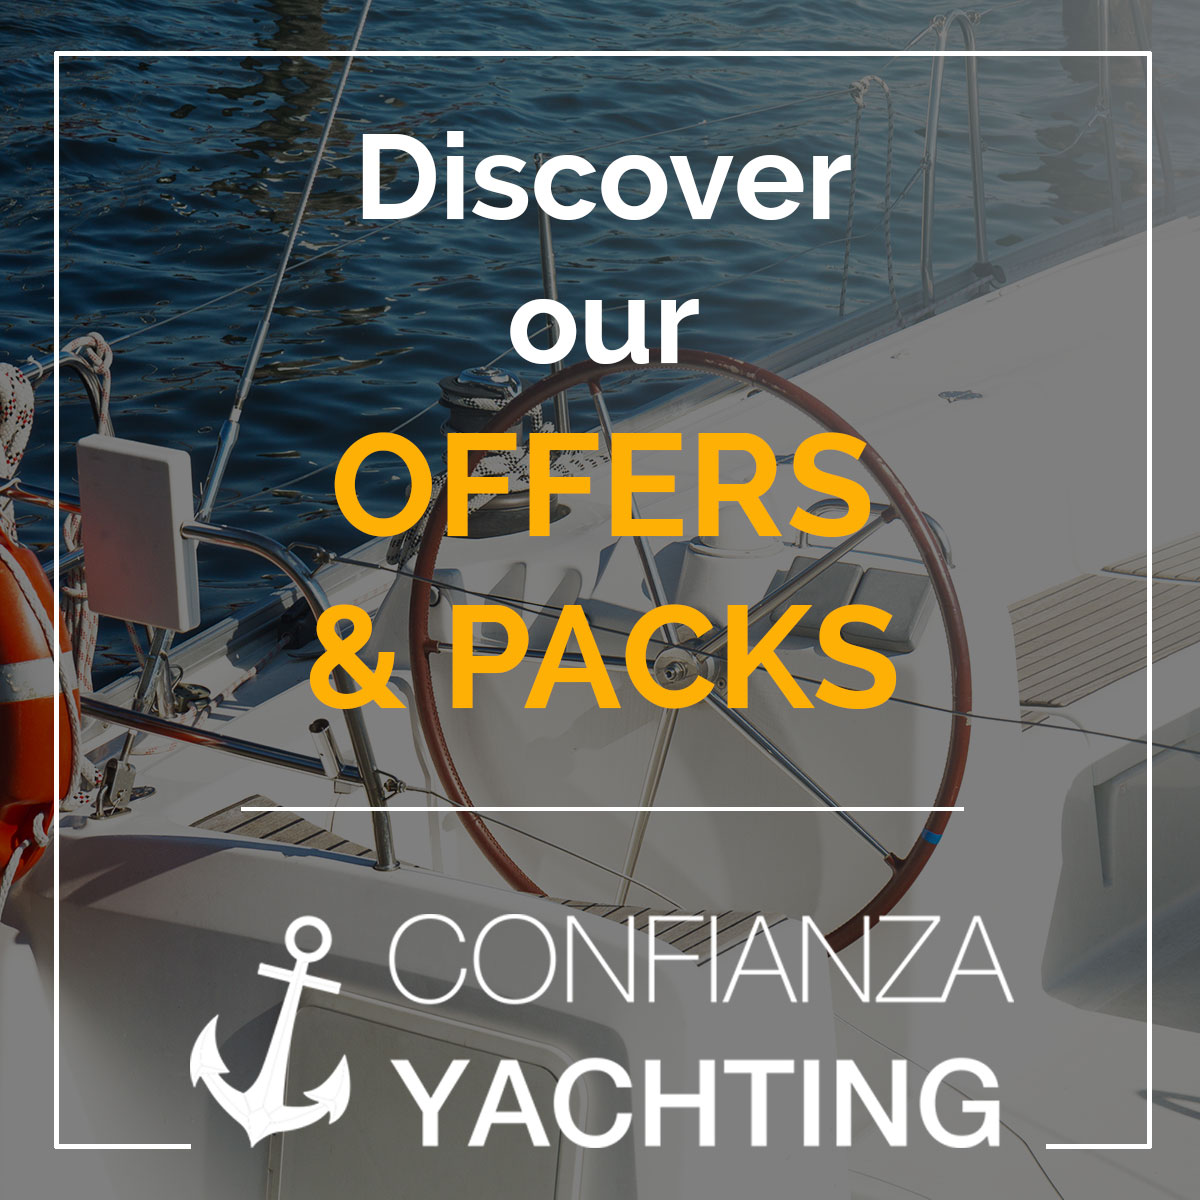 Discover our offers